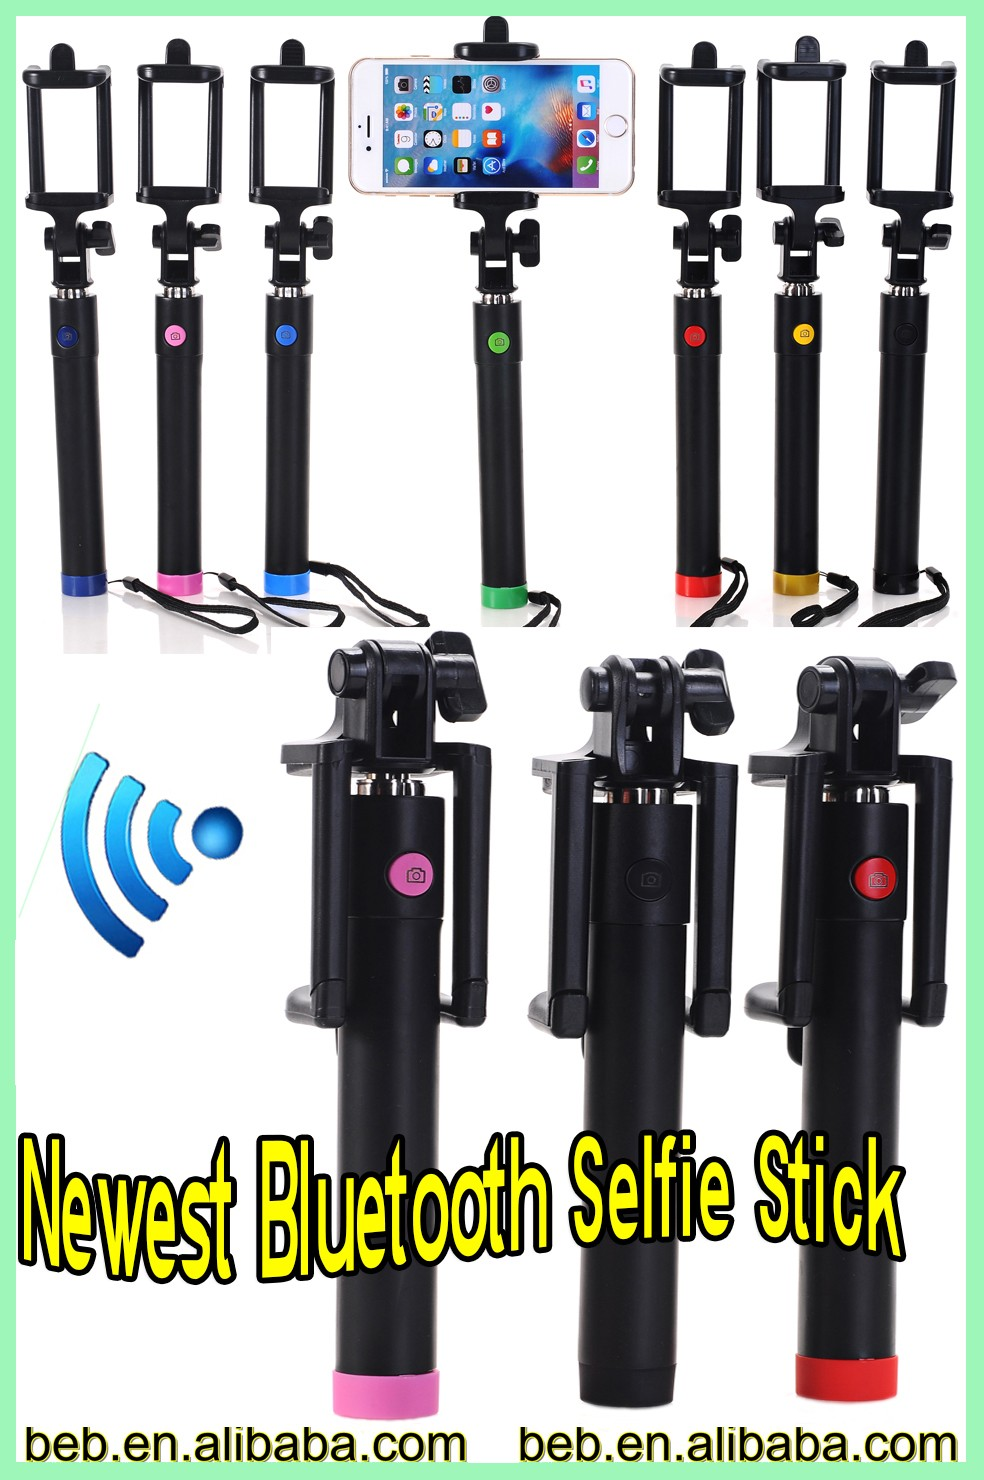 2016 trending hot product professional selfie stick taking photo bluetooth